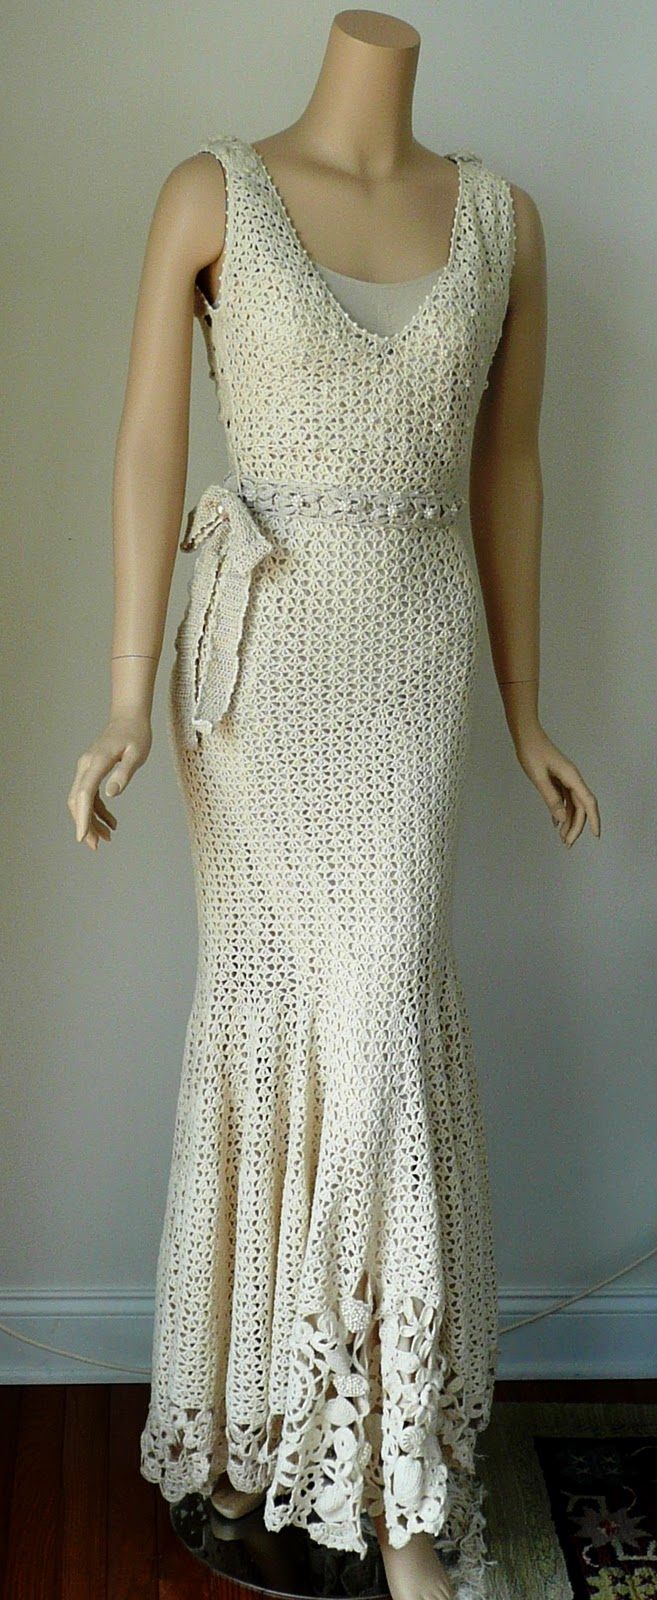 Love Is Being Silly Together Gorgeous Crochet Dress